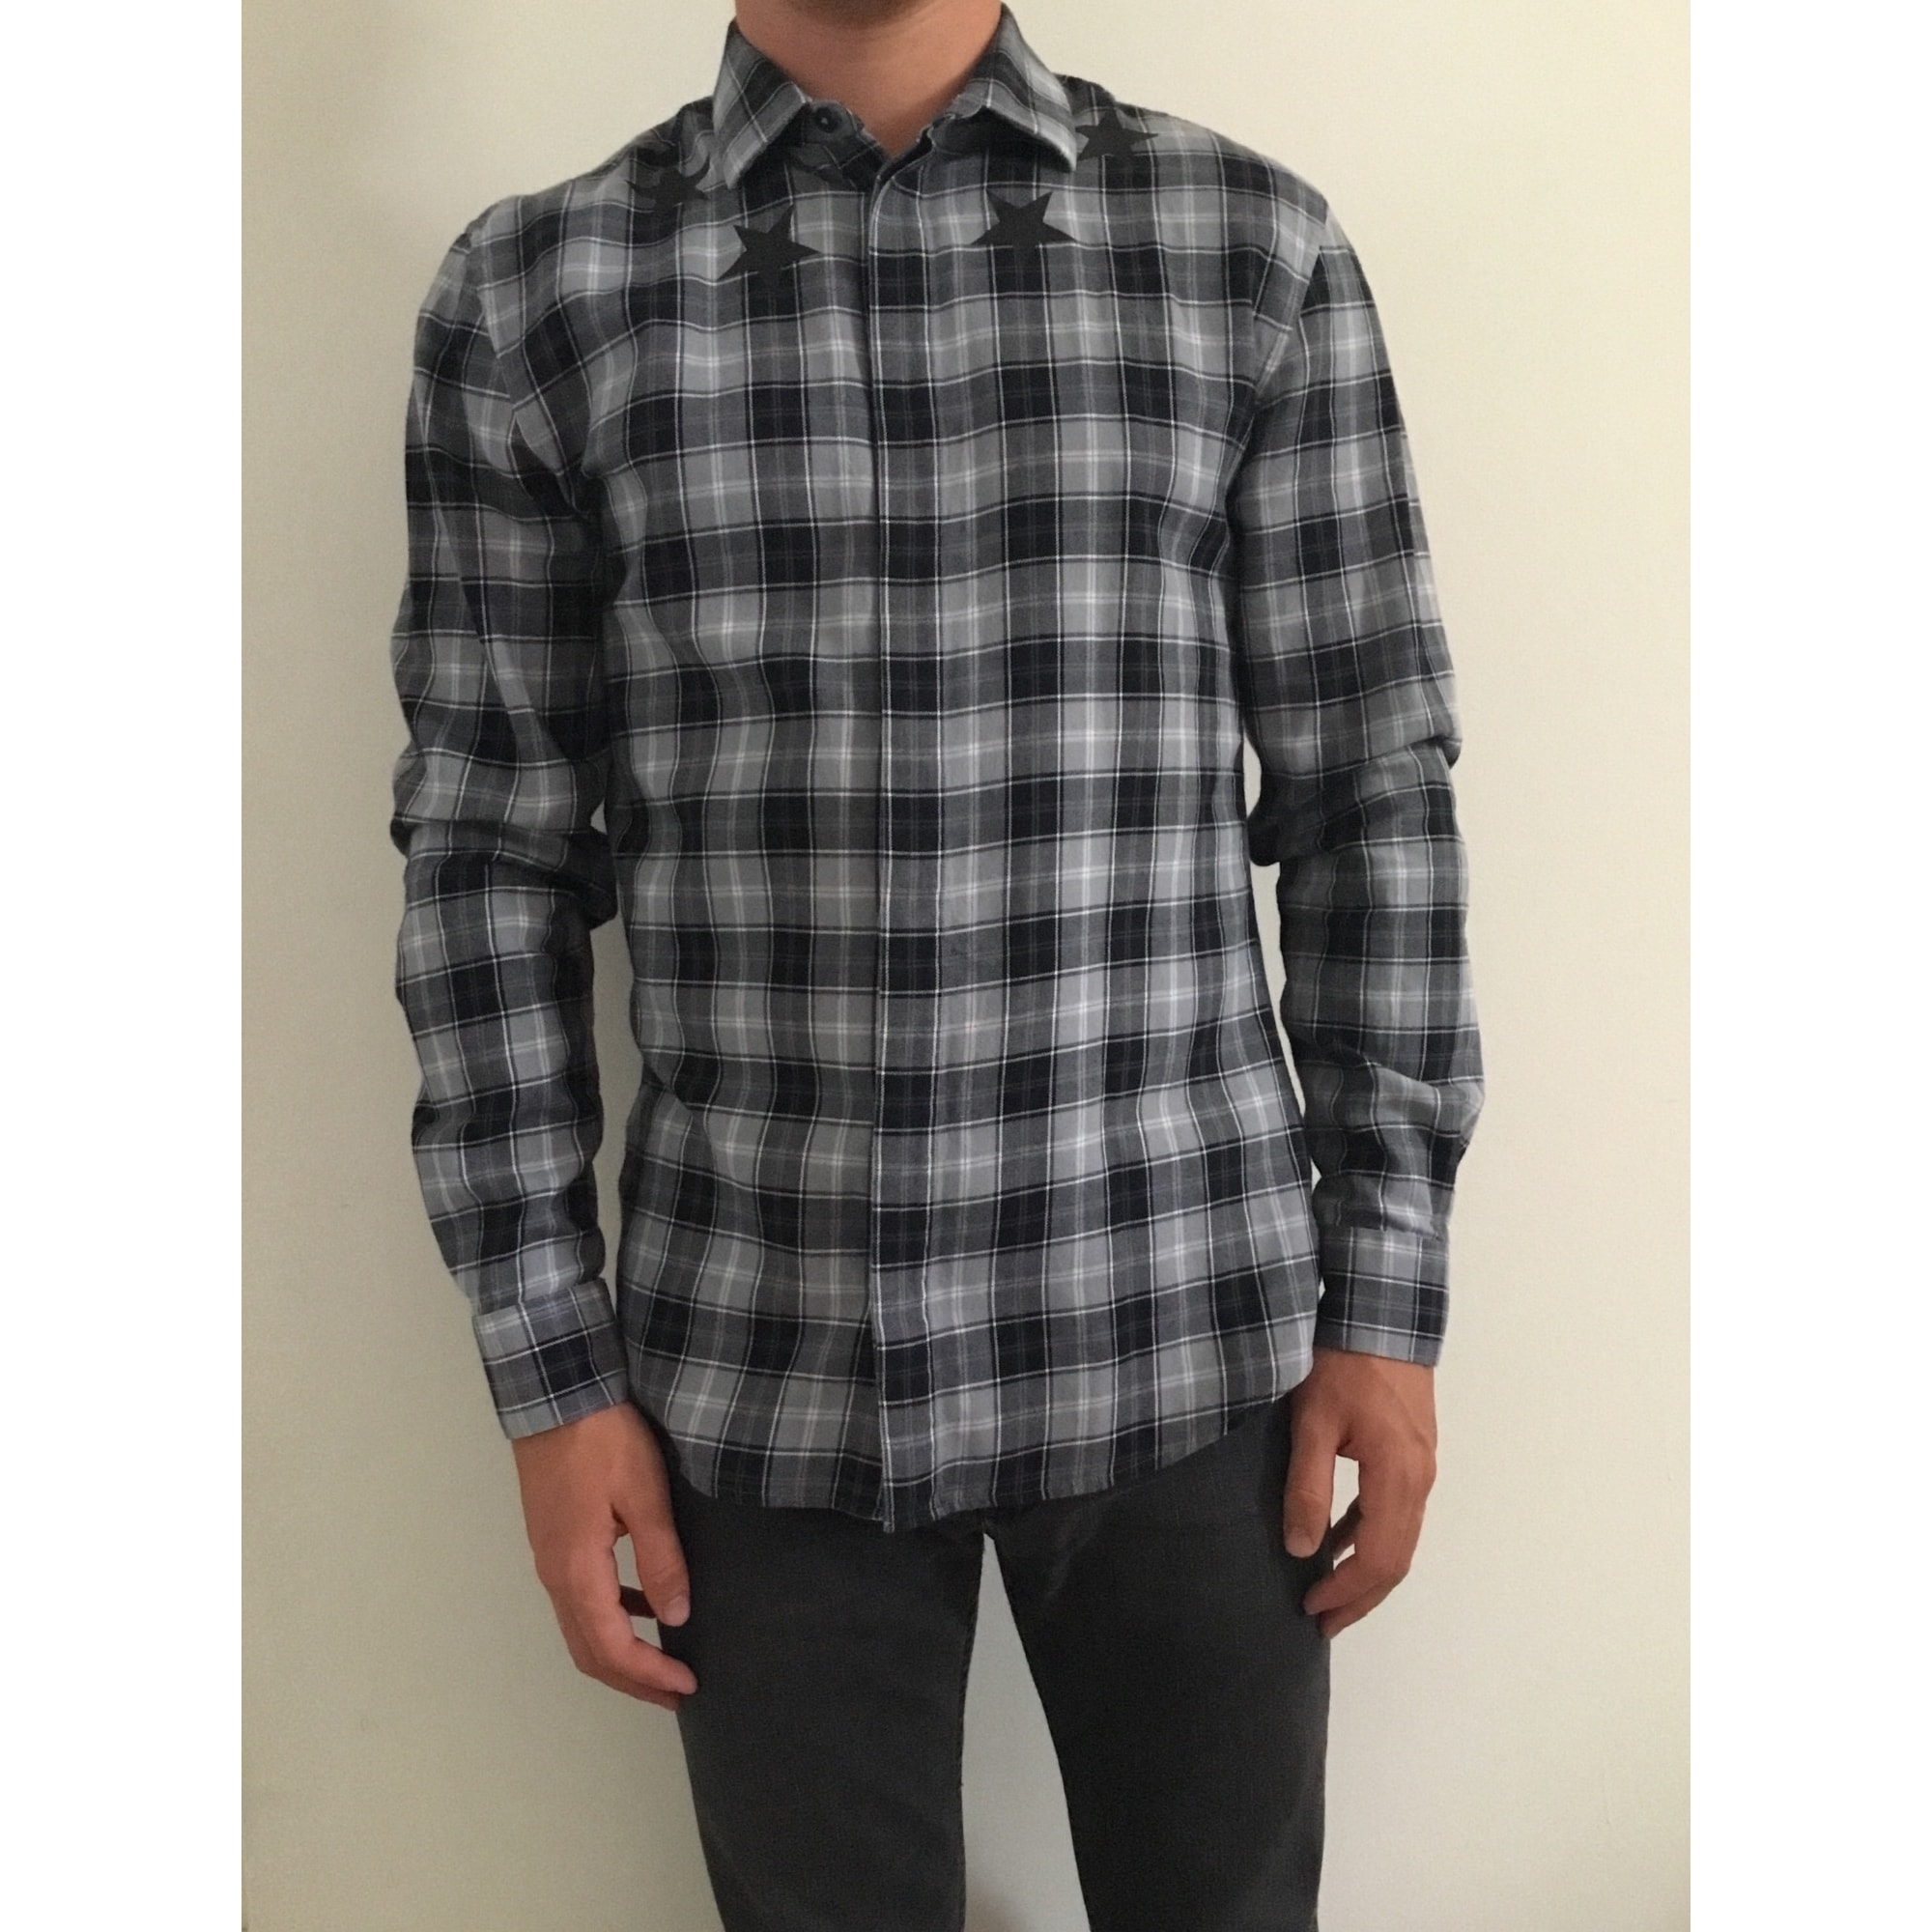 Chemise GIVENCHY Gris, anthracite